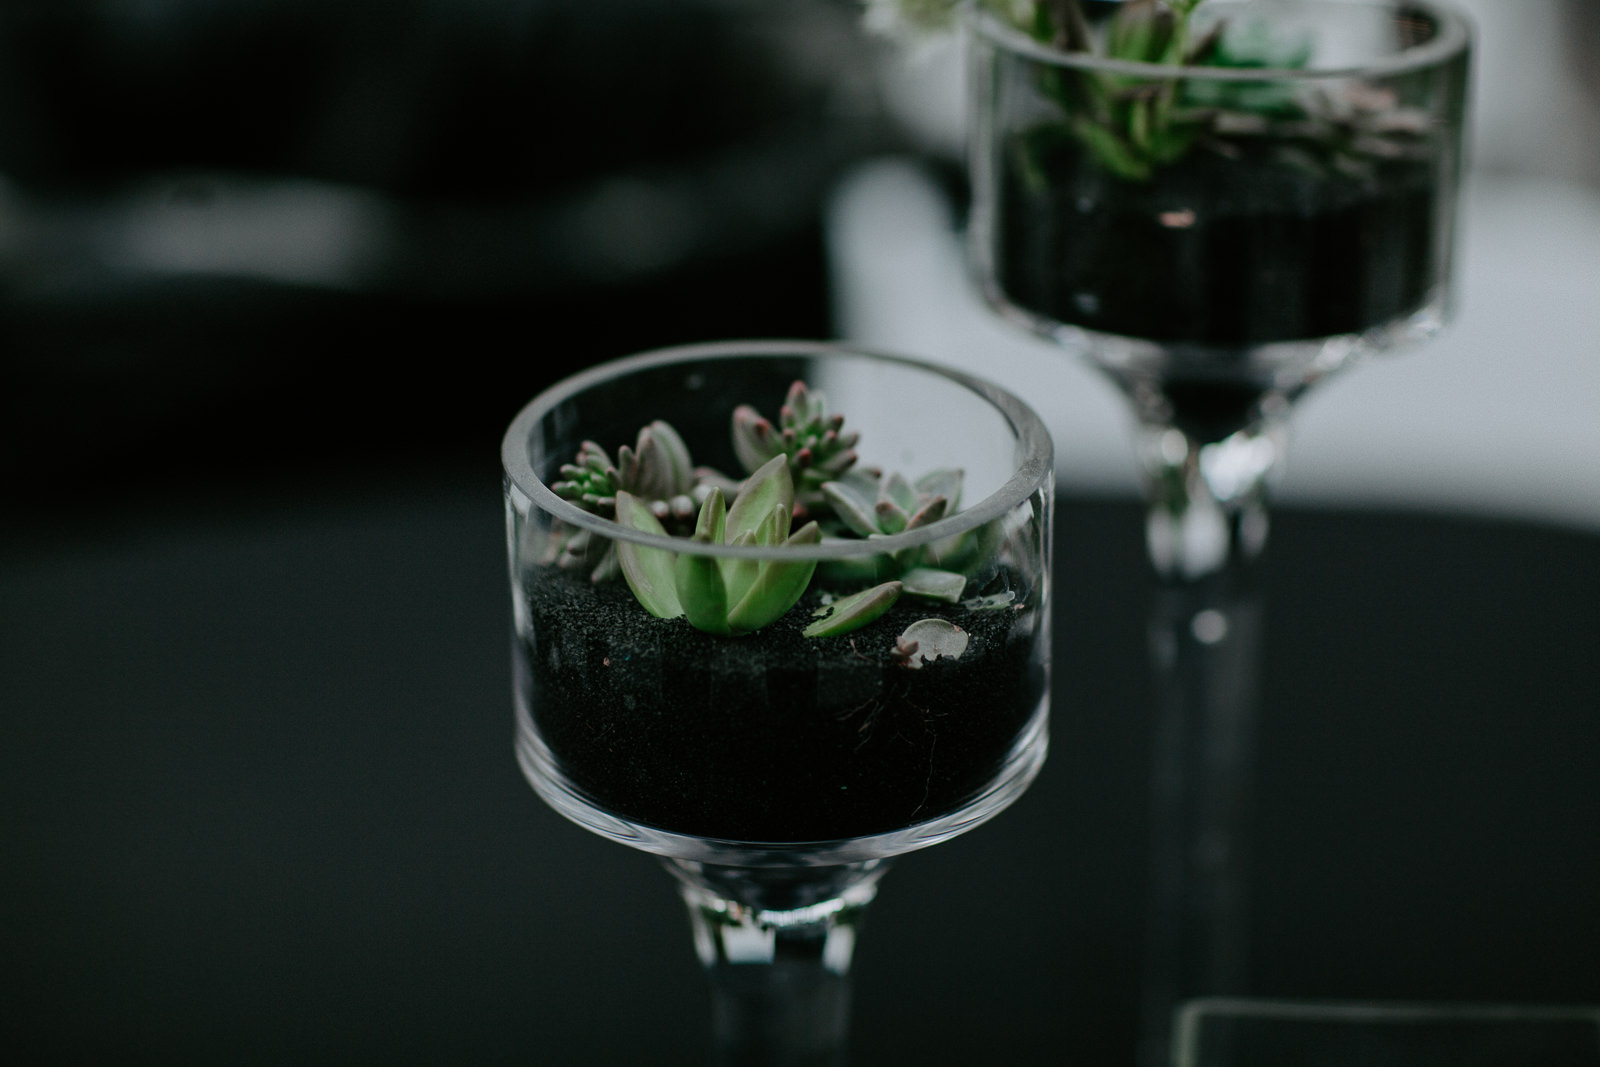 Table centerpieces of succulents in glass wine glasses